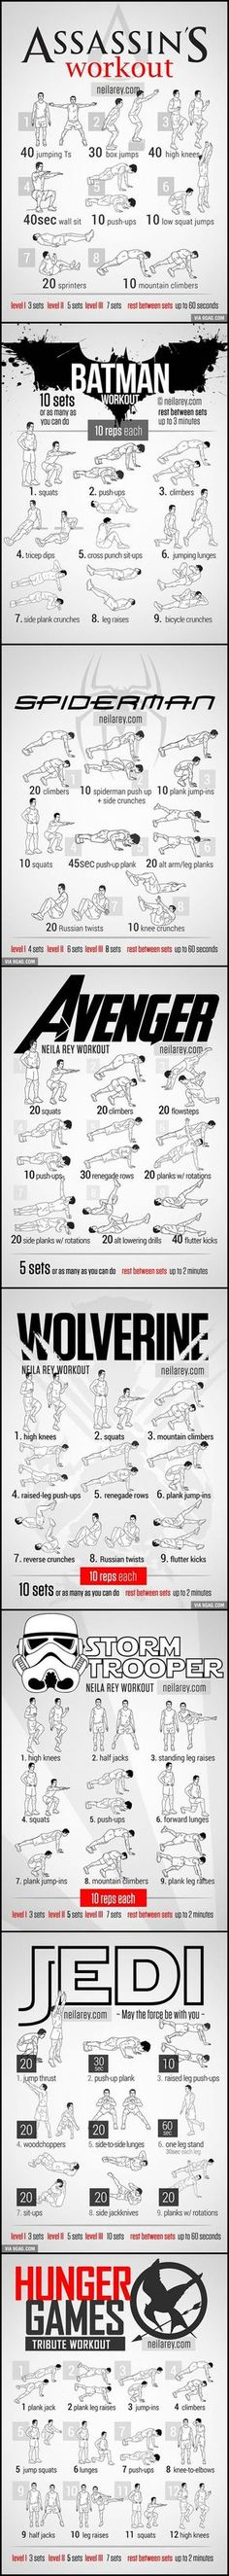 Assassin's Creed, Batman, Spiderman, Avenger's, Wolverine, Storm Trooper, Jedi, and Hunger Games styled workout. So cool!